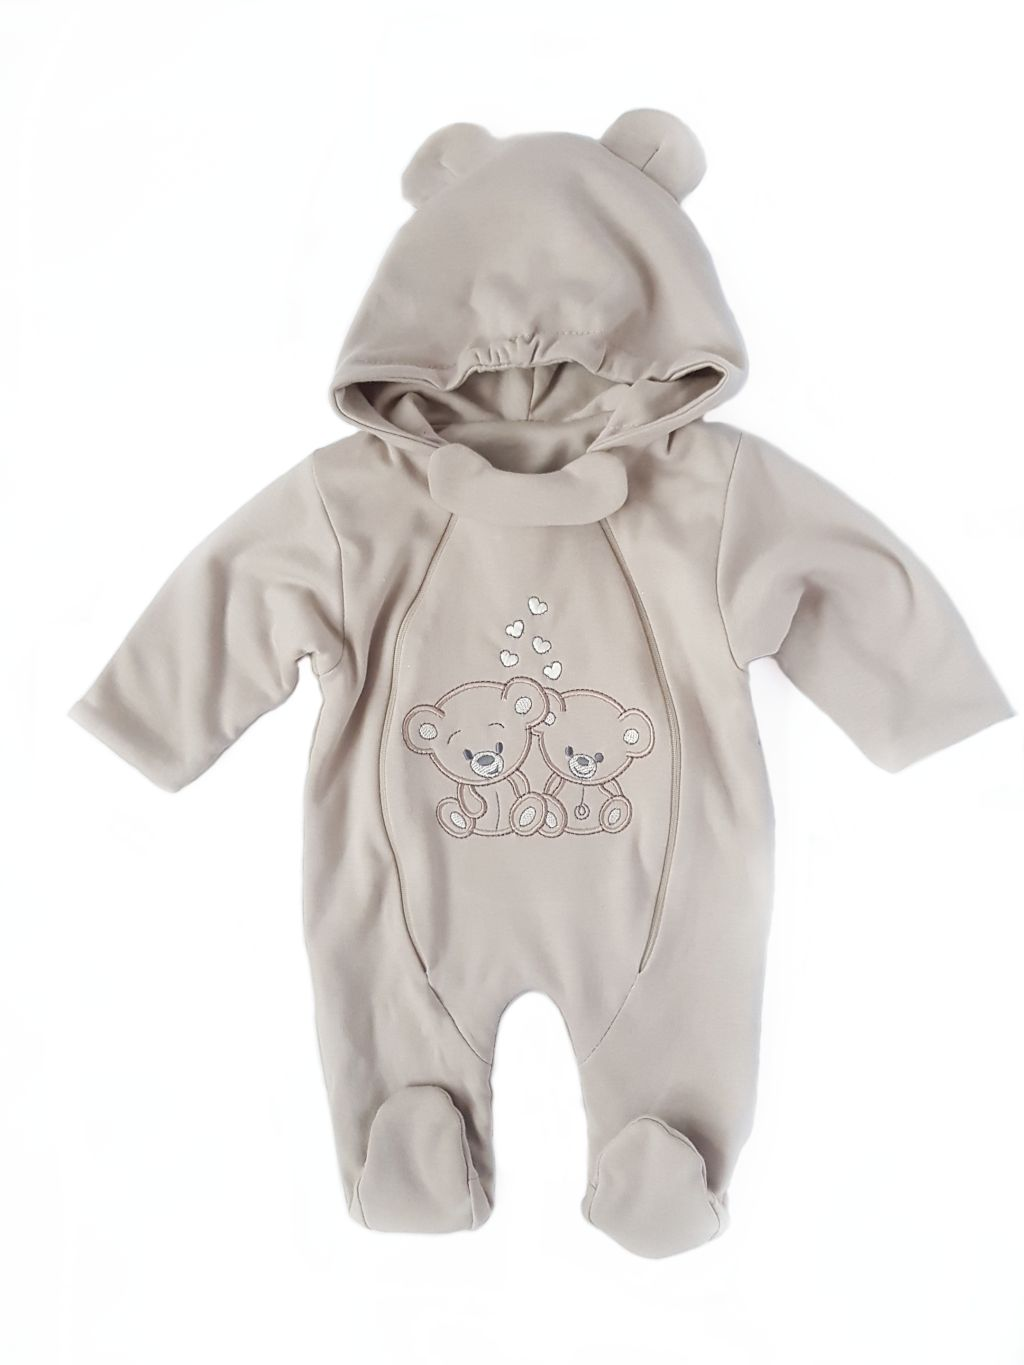 BABY GROW SLEEPING SUIT ALL-IN-ONE BABY OVERALLS ZIPPY-UP